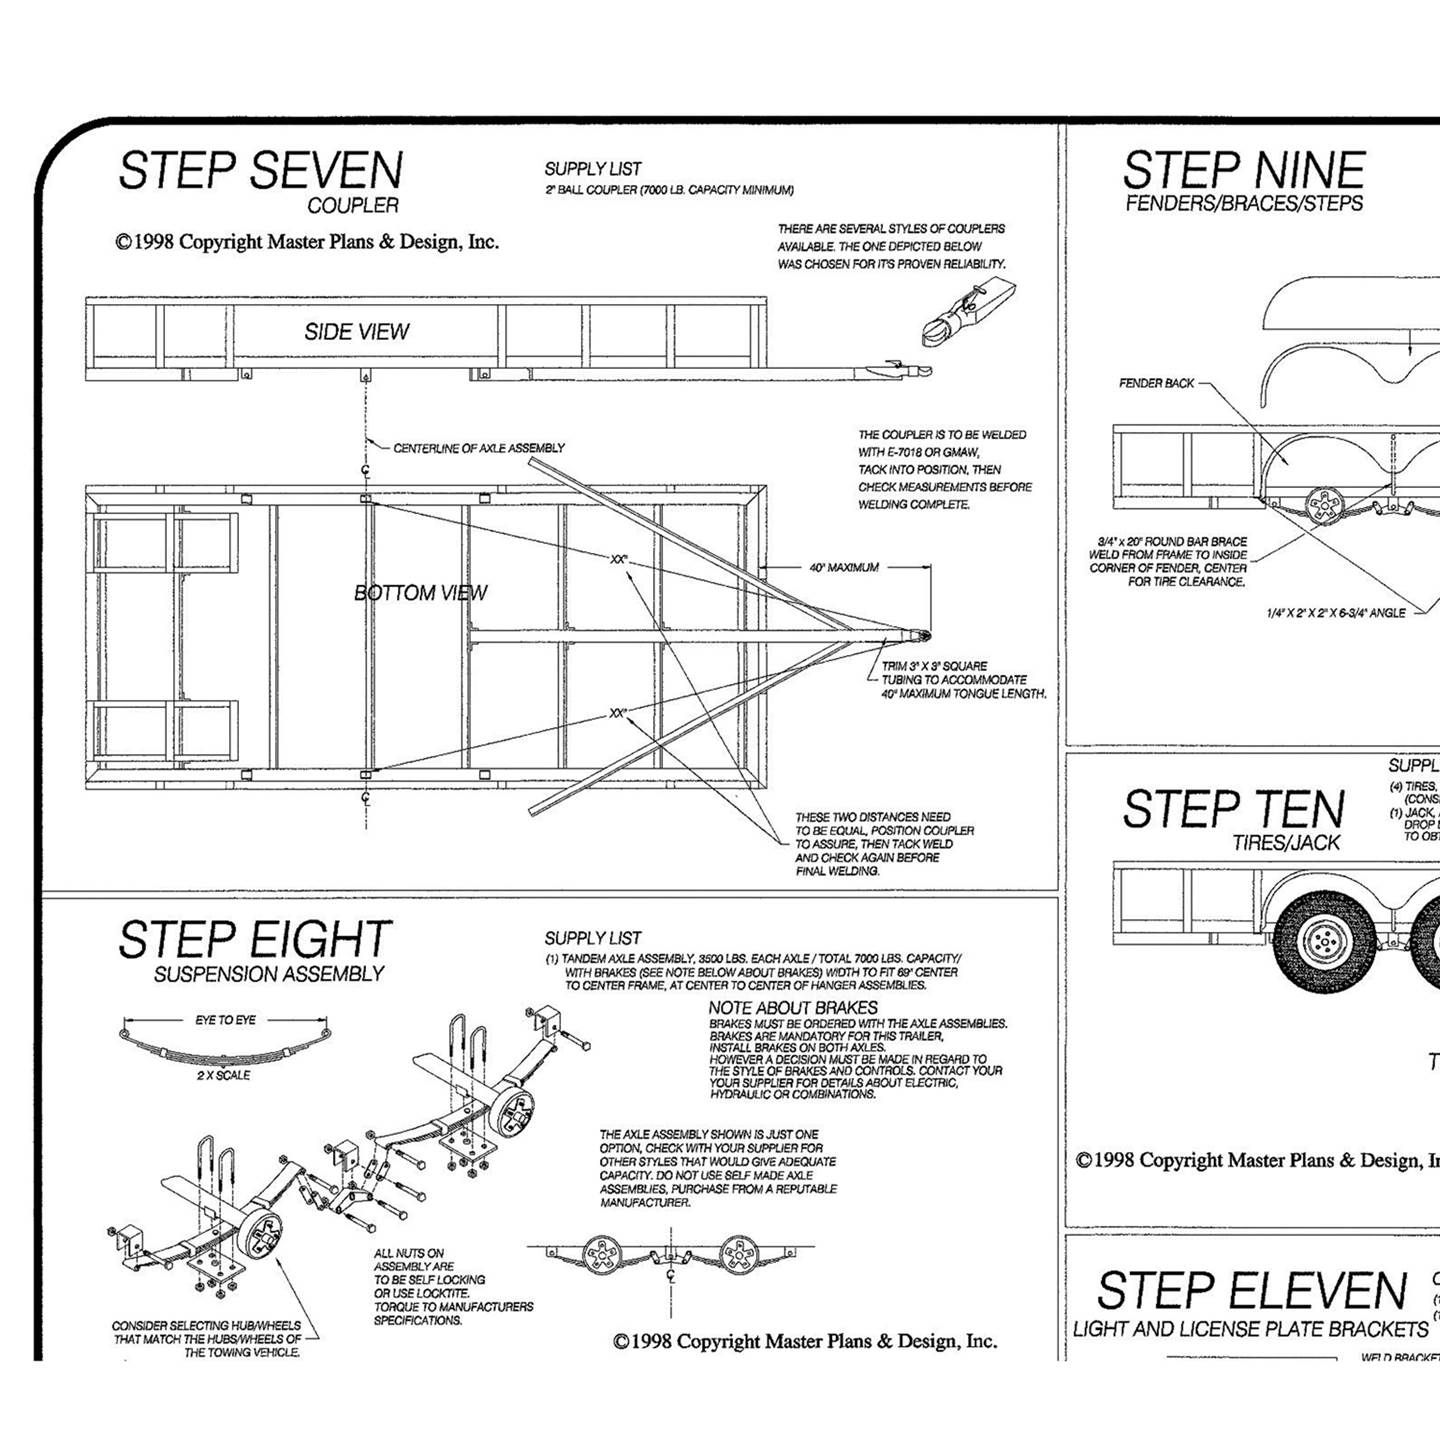 be95652f2b71515b4b708f583658a014 image result for tandem axle utility trailer plans chassis tandem axle utility trailer wiring diagram at soozxer.org